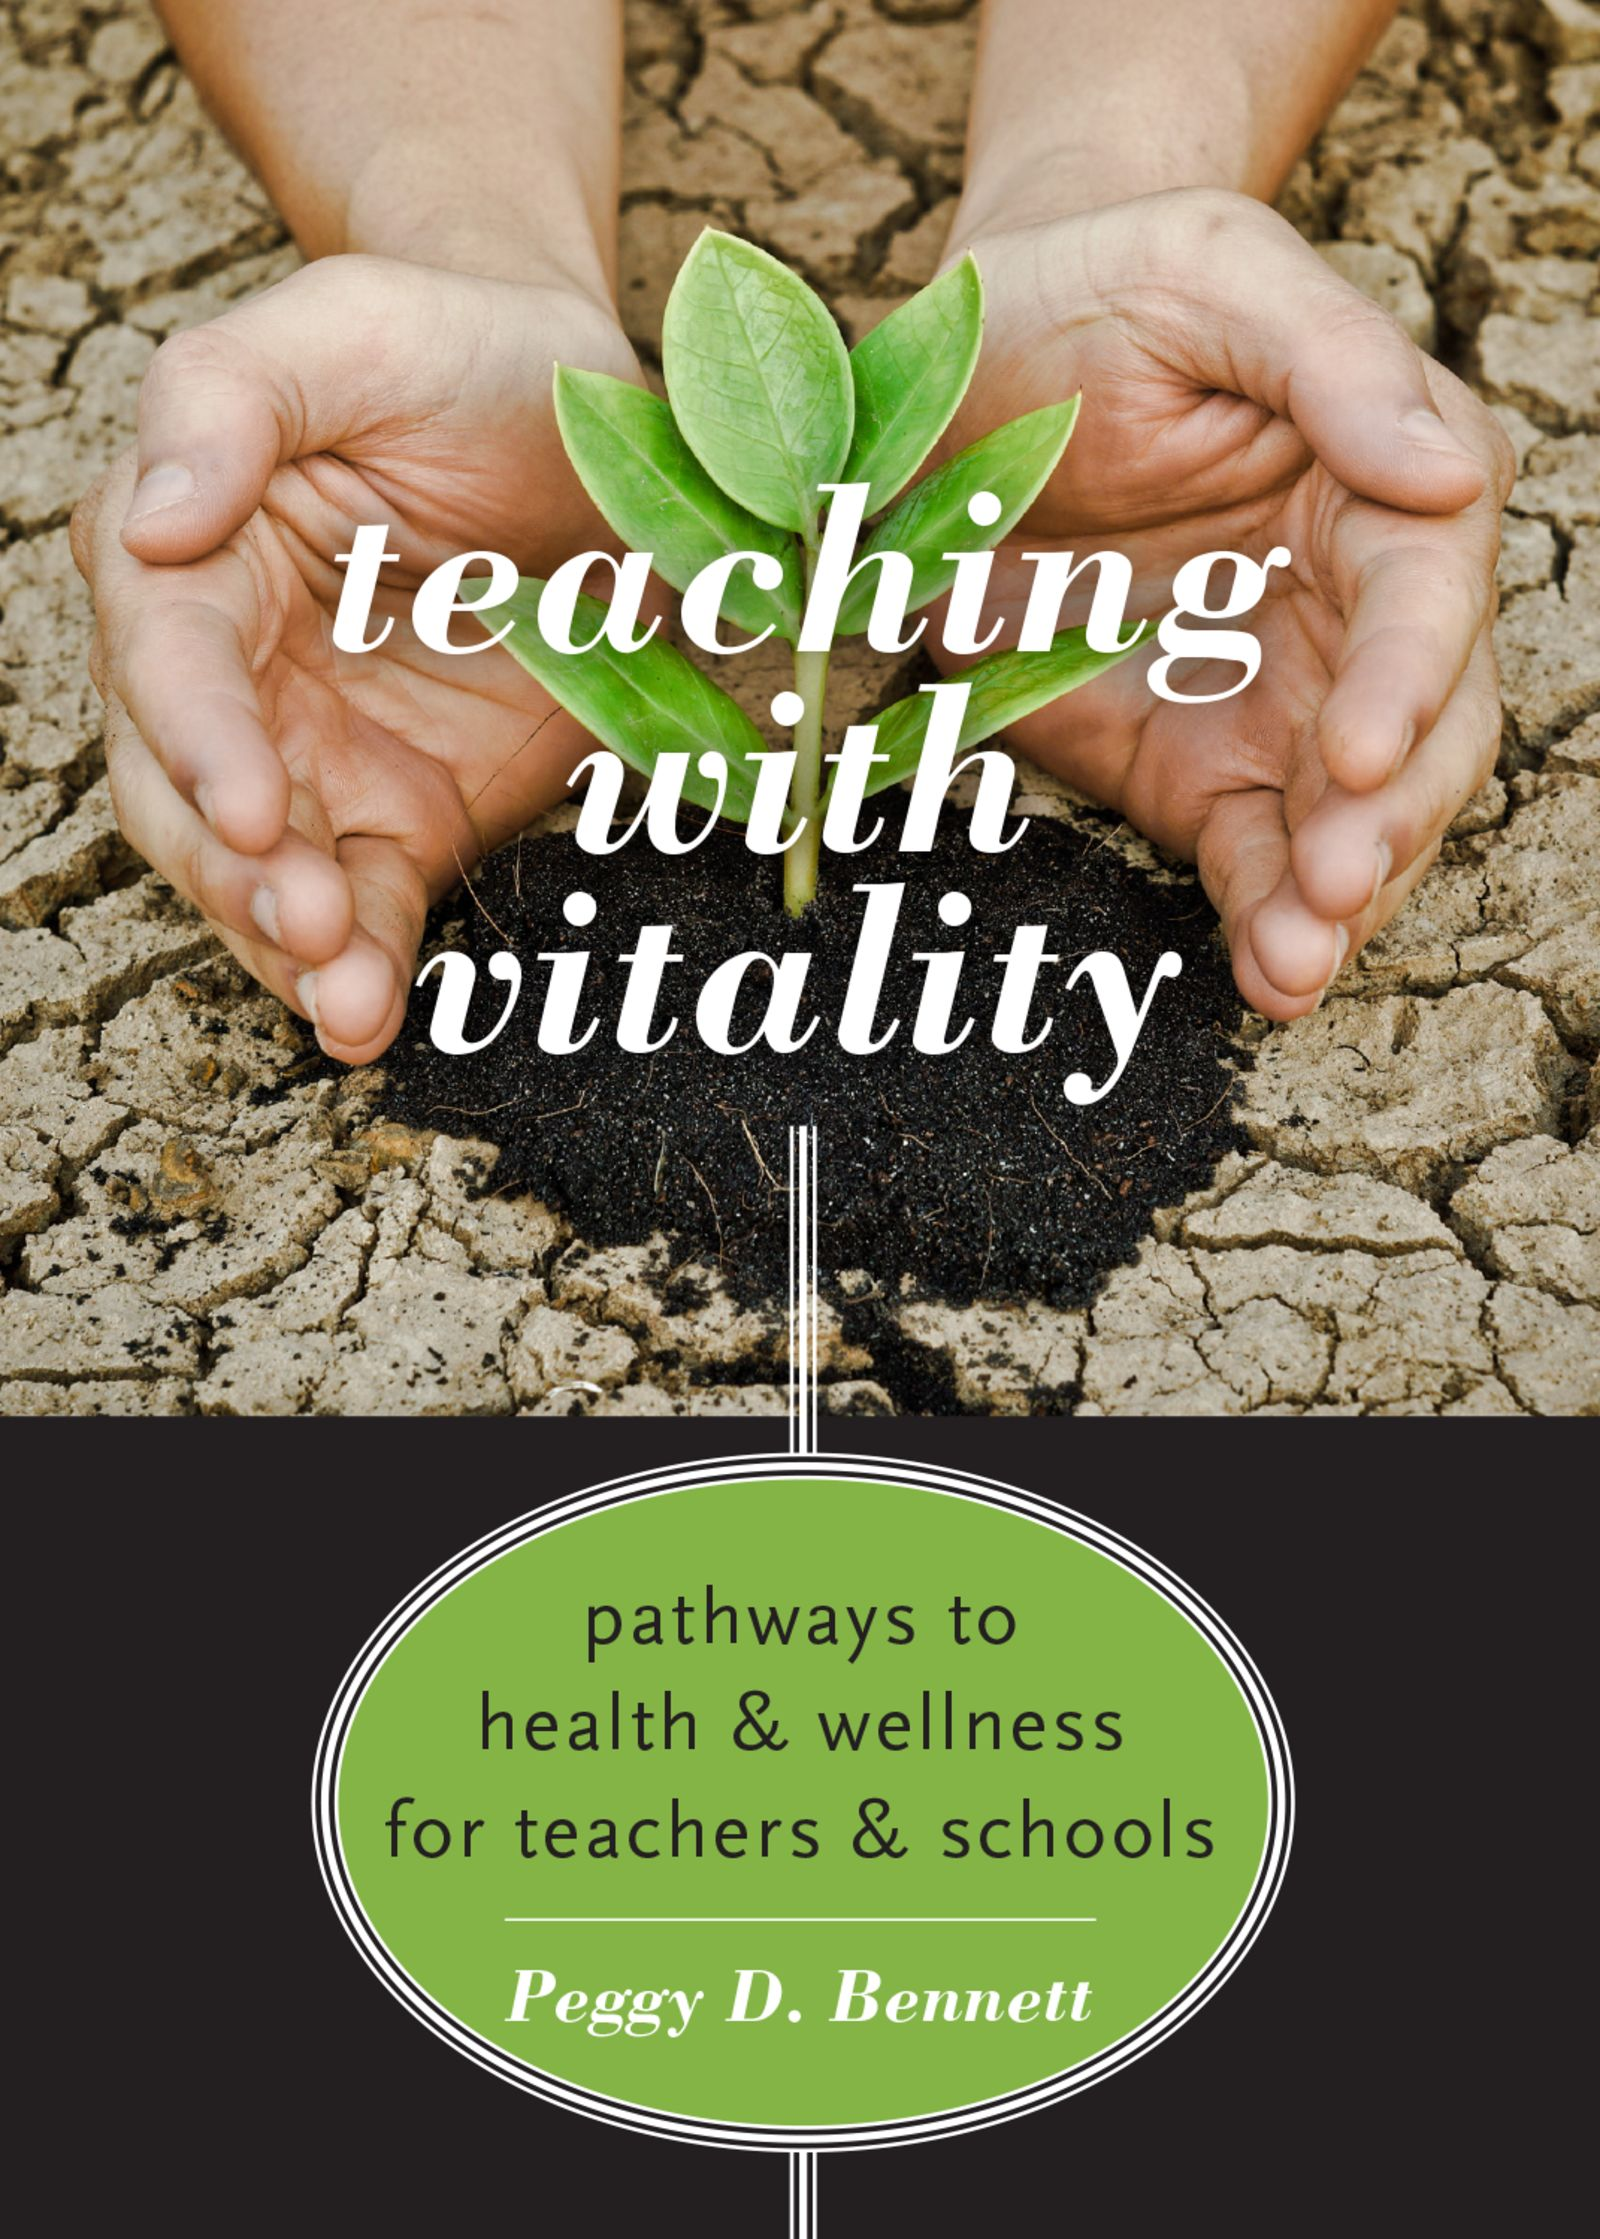 Teaching with VitalityPathways to Health and Wellness for Teachers and Schools